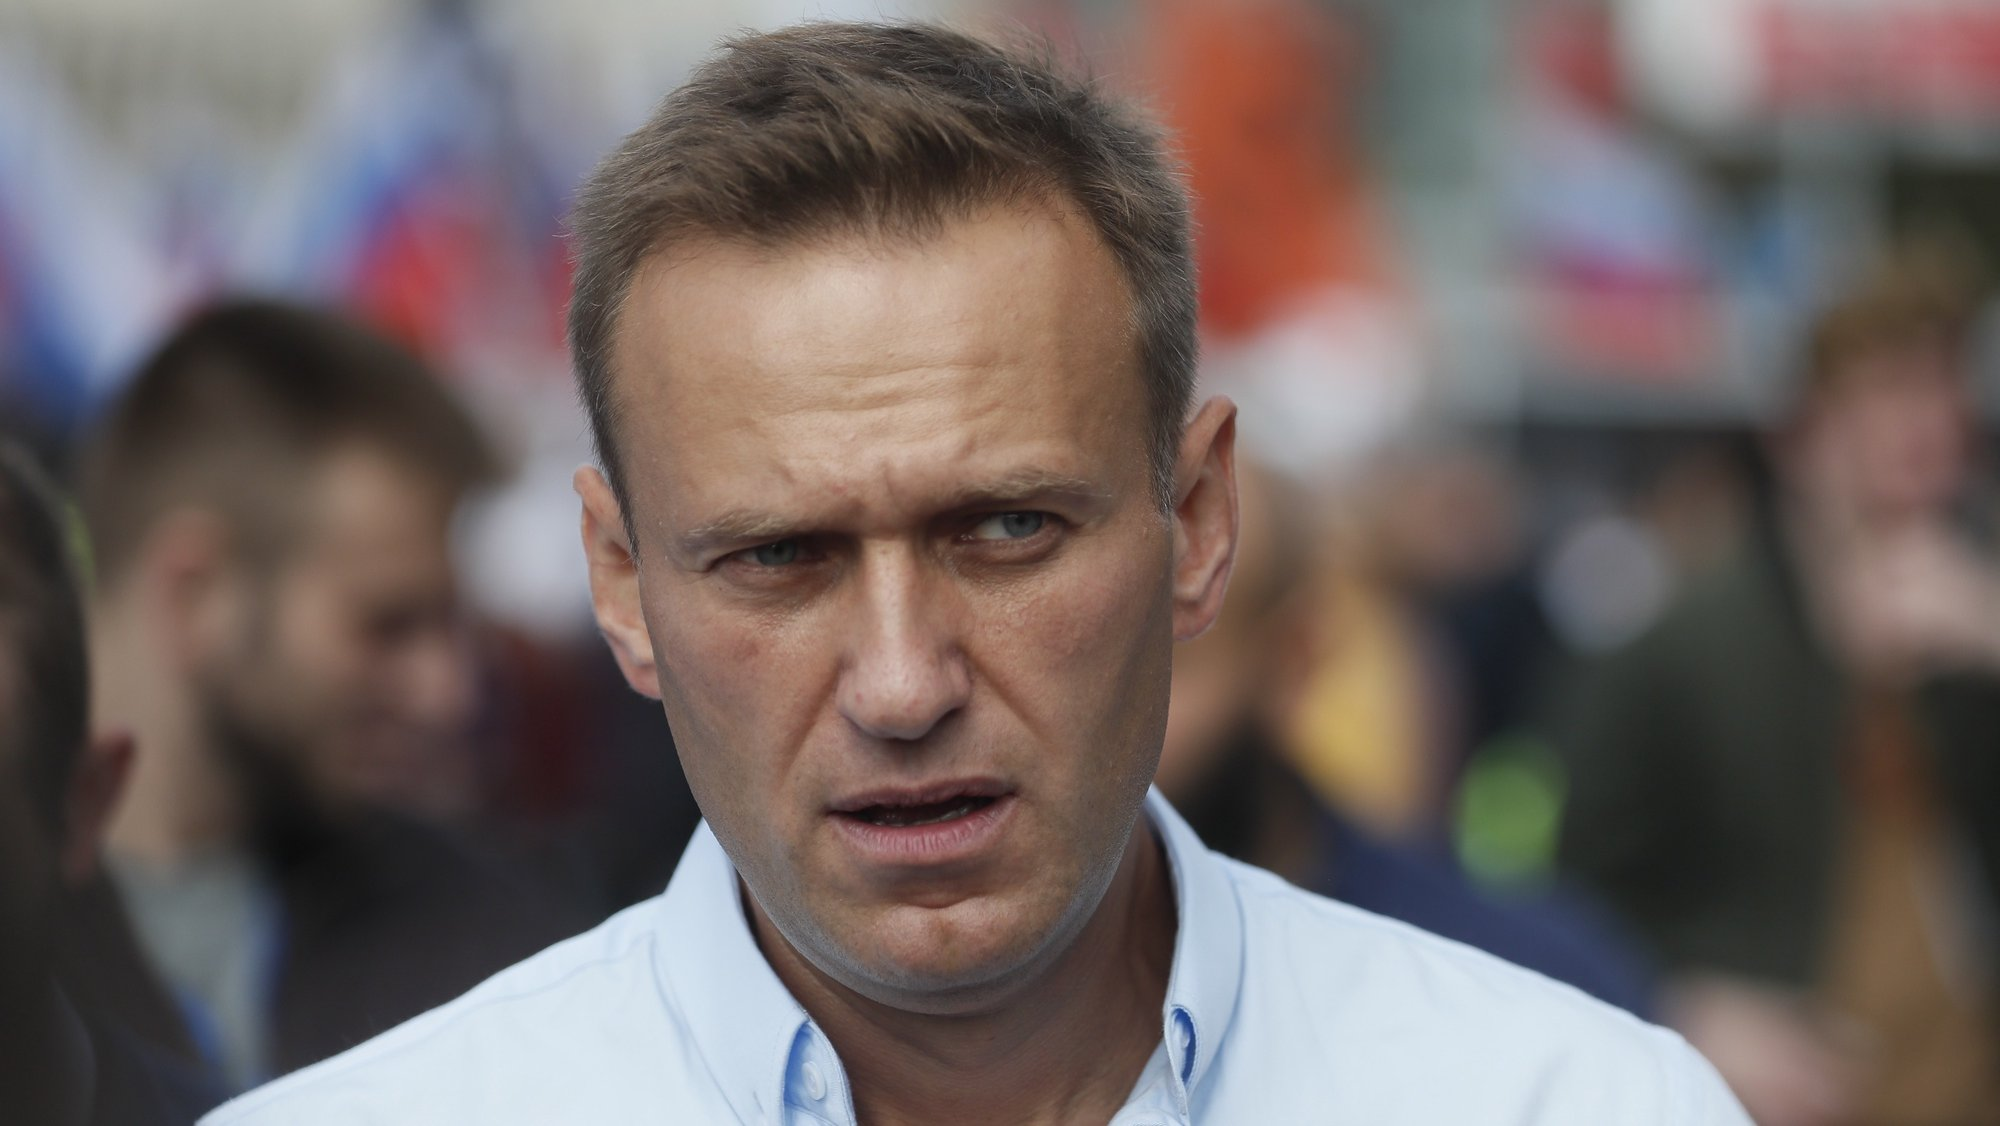 epa09145122 (FILE) - Russian Opposition activist Alexei Navalny attends a rally in support of opposition candidates in the Moscow City Duma elections in downtown of Moscow, Russia, 20 July 2019 (reissued 19 April 2021). Russian imprisoned opposition activist Alexei Navalny is to be moved to a hospital, the Russian state penitentiary service said on 19 April 2021. Navalny was on hunger strike since 31 March while serving a prison sentence in a penal colony after he returned from Germany where he was treated in August 2020 for poisoning with a nerve agent from the Novichok group.  EPA/SERGEI ILNITSKY *** Local Caption *** 56666084